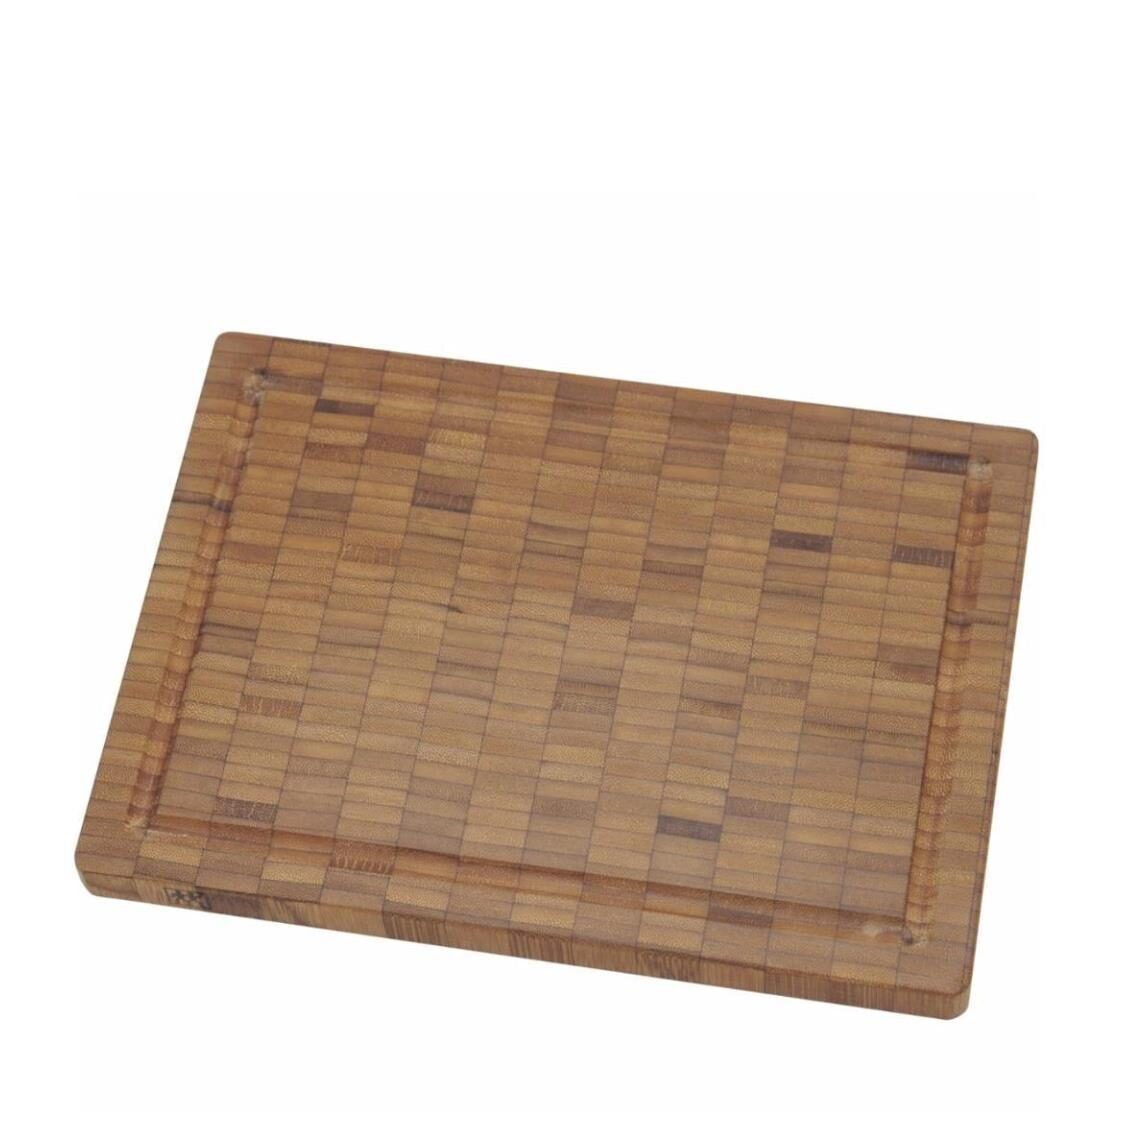 Twin Bamboo Board